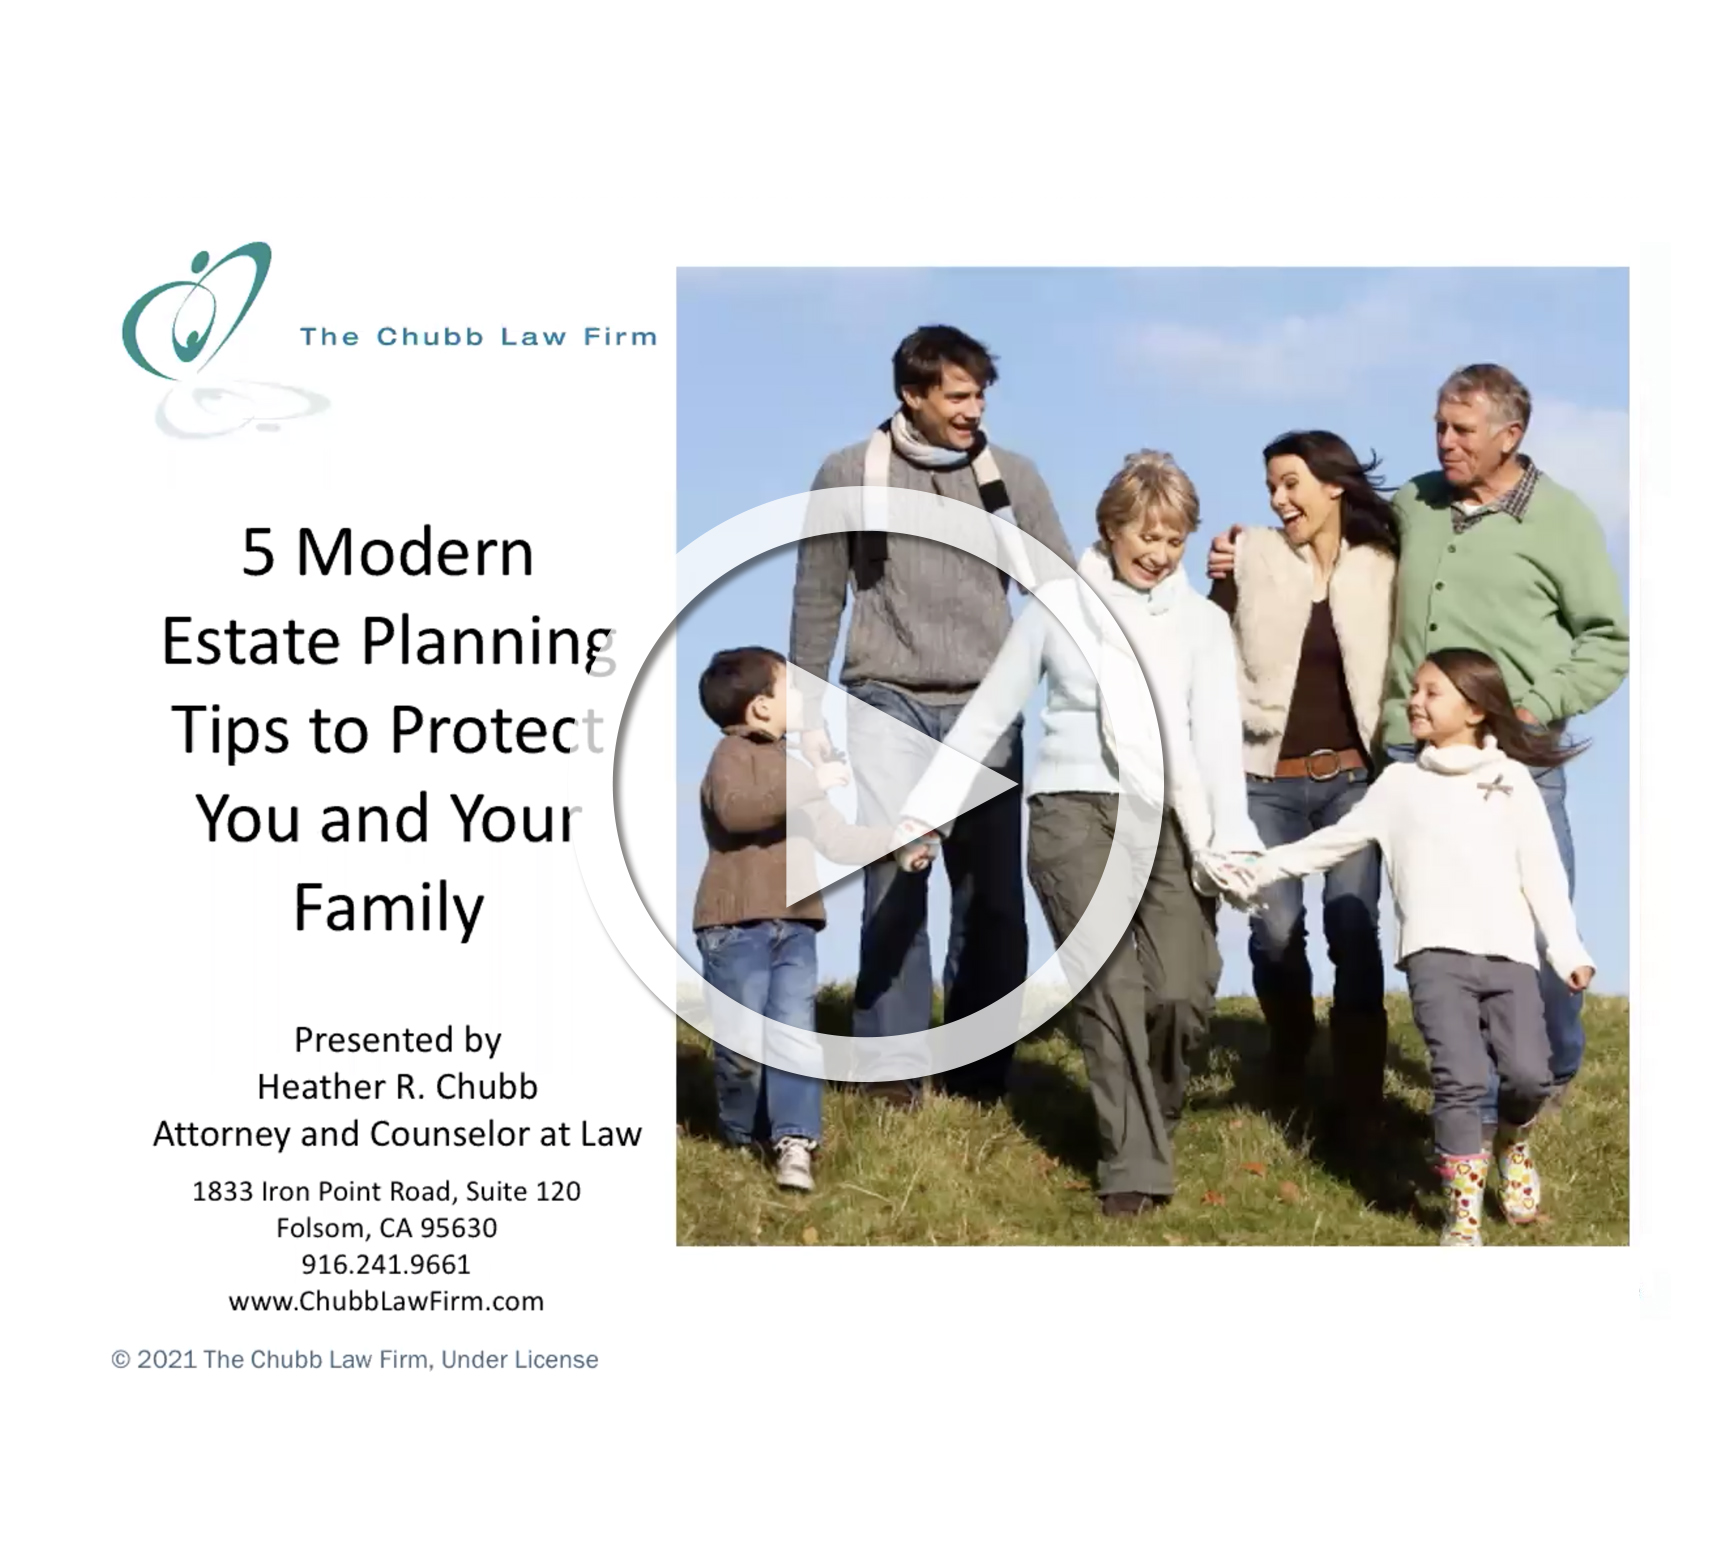 Webinar: 5 Modern Estate Planning Tips to Protect You and Your Loved Ones